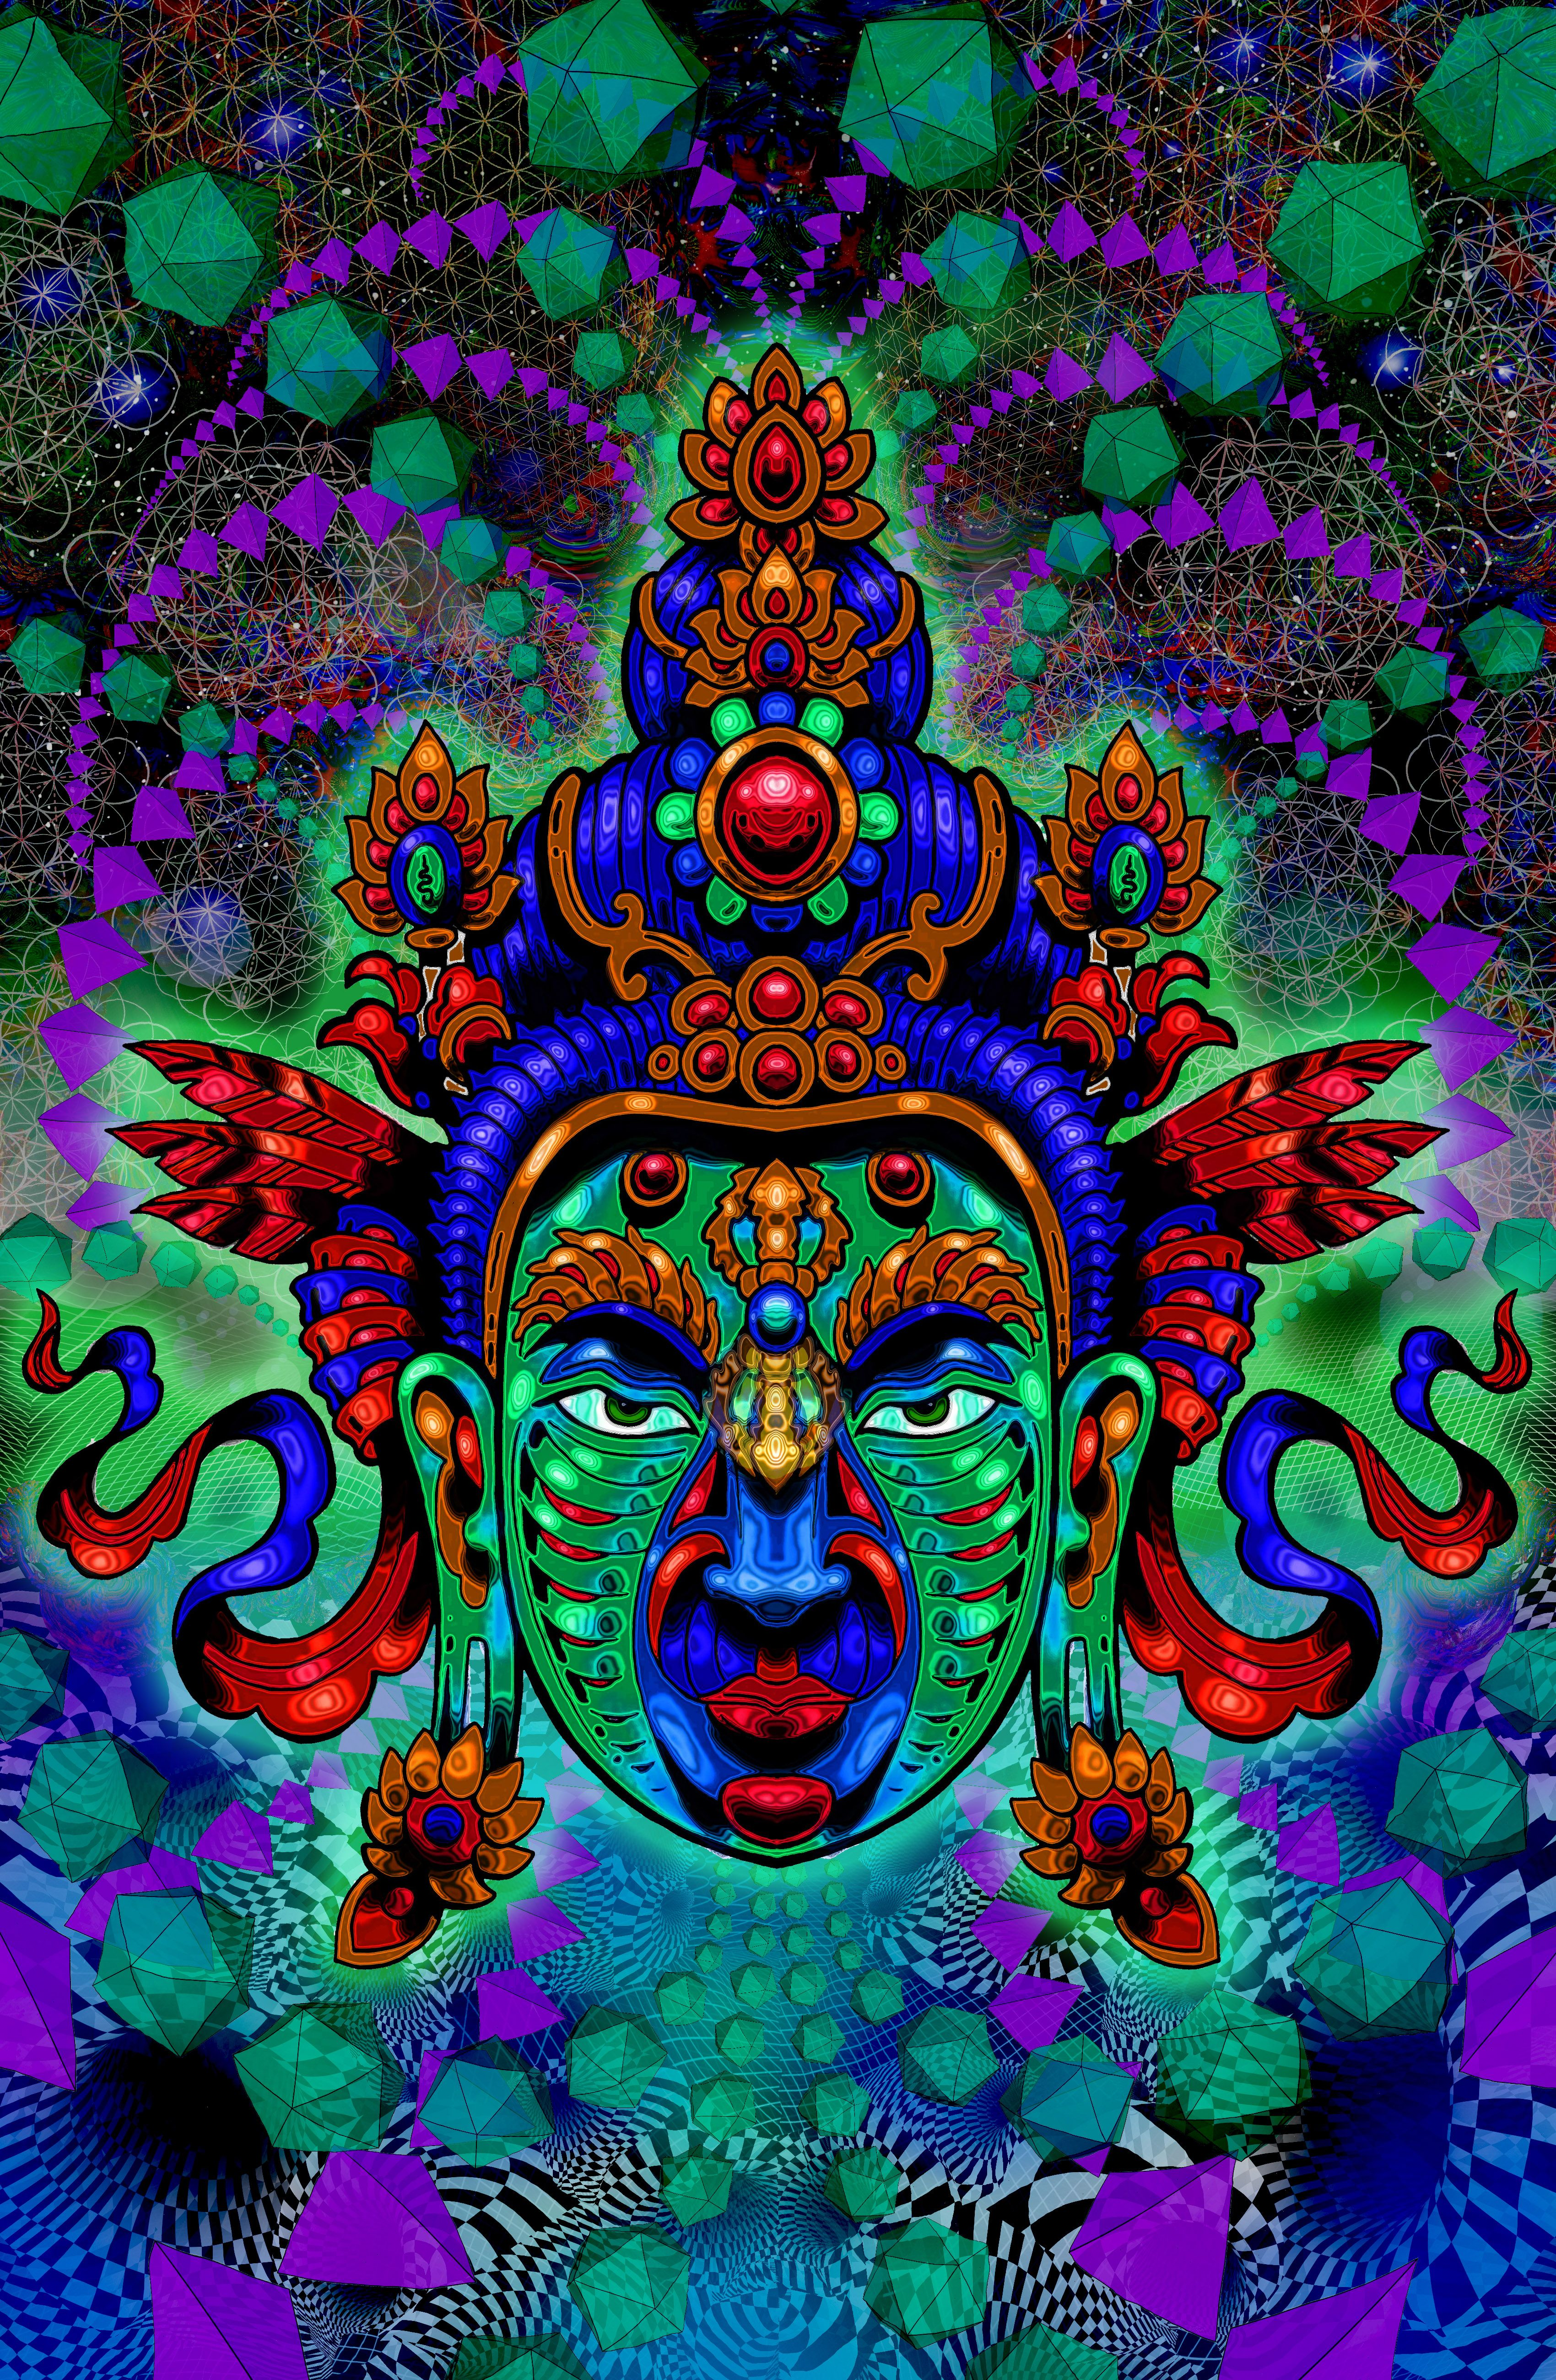 BUDDHA TRIPPY POSTER ABSTRACT PSYCHEDELIC ART POSTER WALL PRINT LARGE GIANT